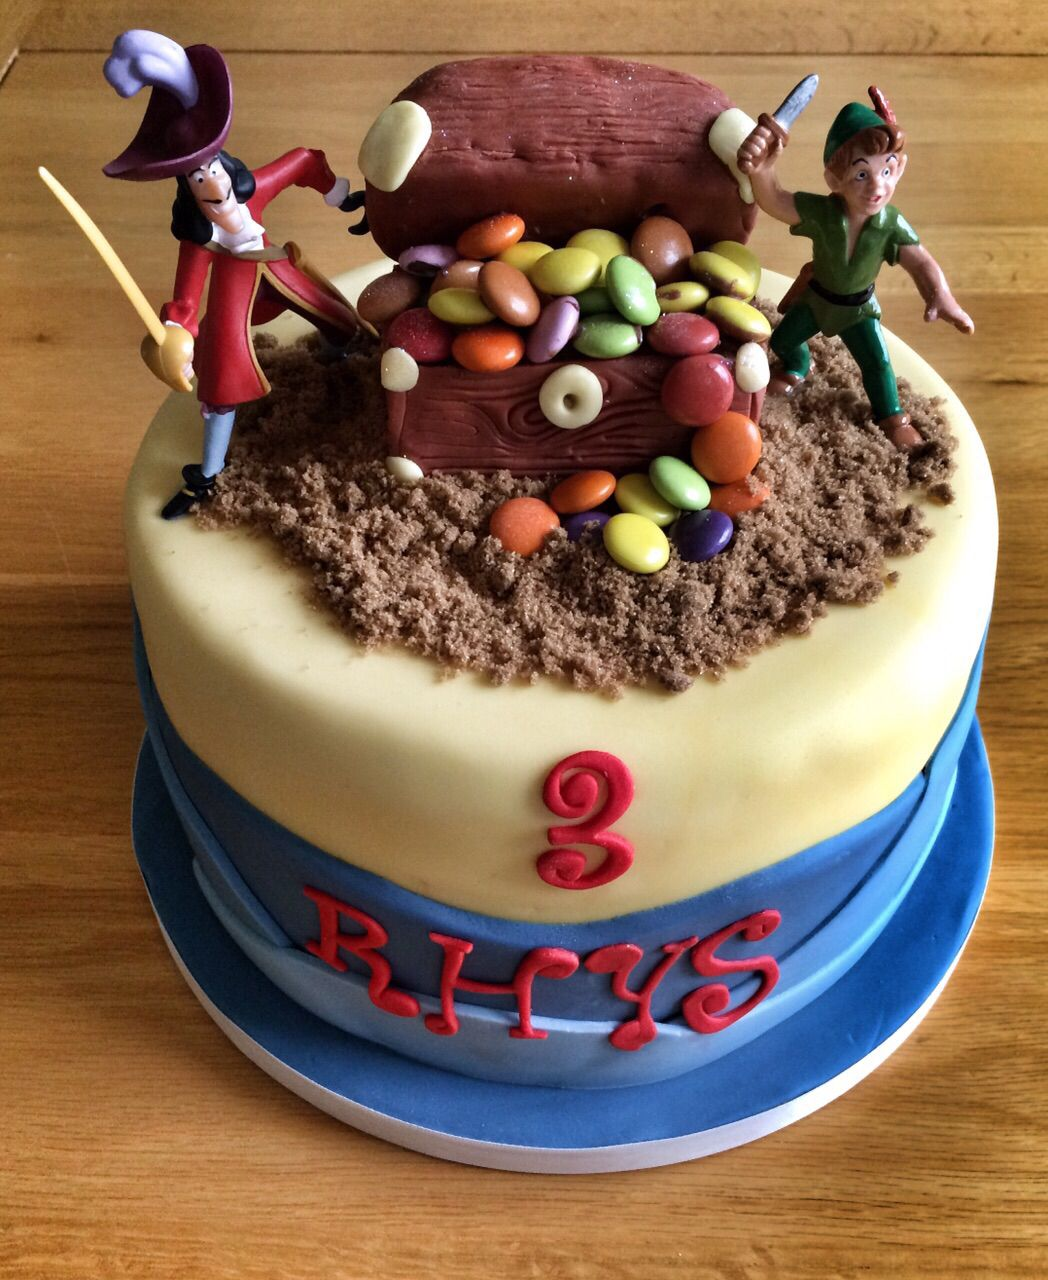 Groovy Captain Hook Trying Steal Peter Pans Treasure Box Birthday Cake Personalised Birthday Cards Arneslily Jamesorg